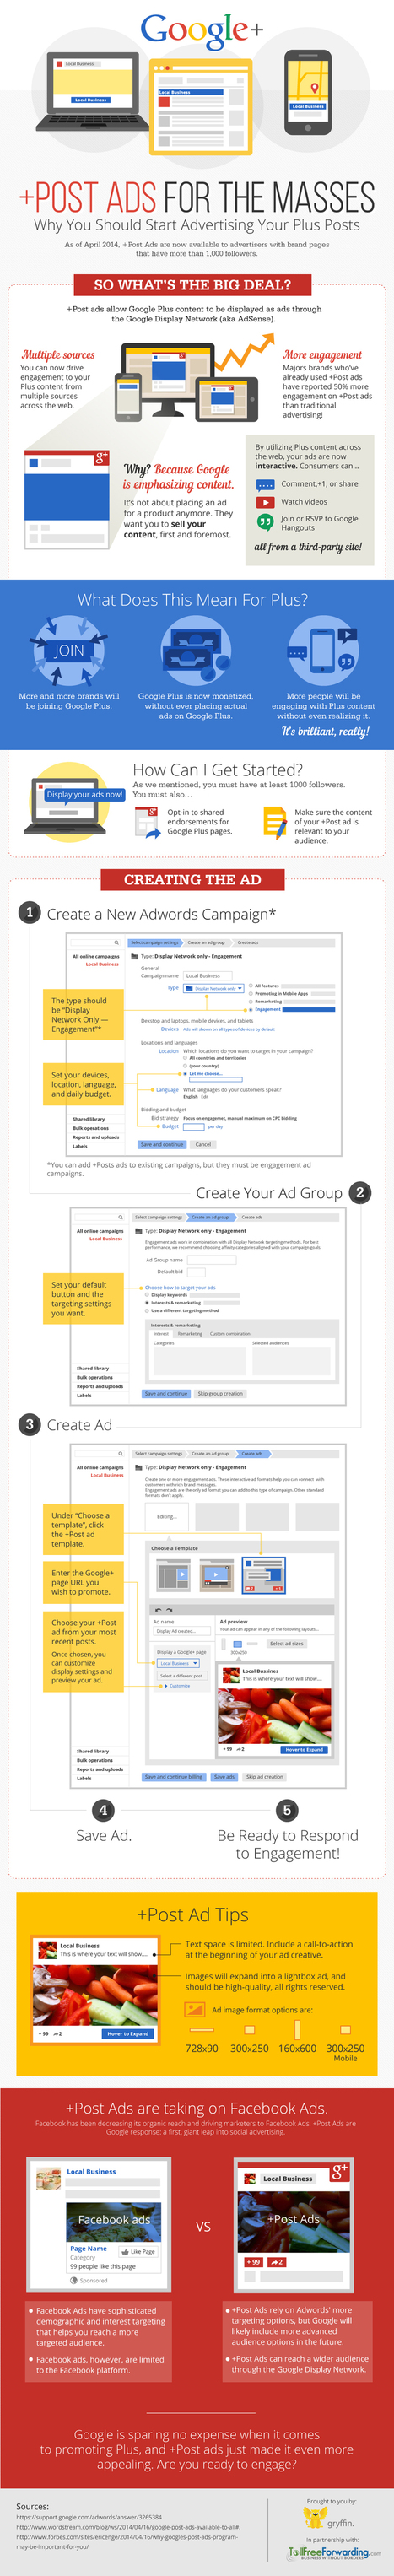 How To Turn Google Plus Content Into +Post Ads On GDN | CrowdFunding | Scoop.it